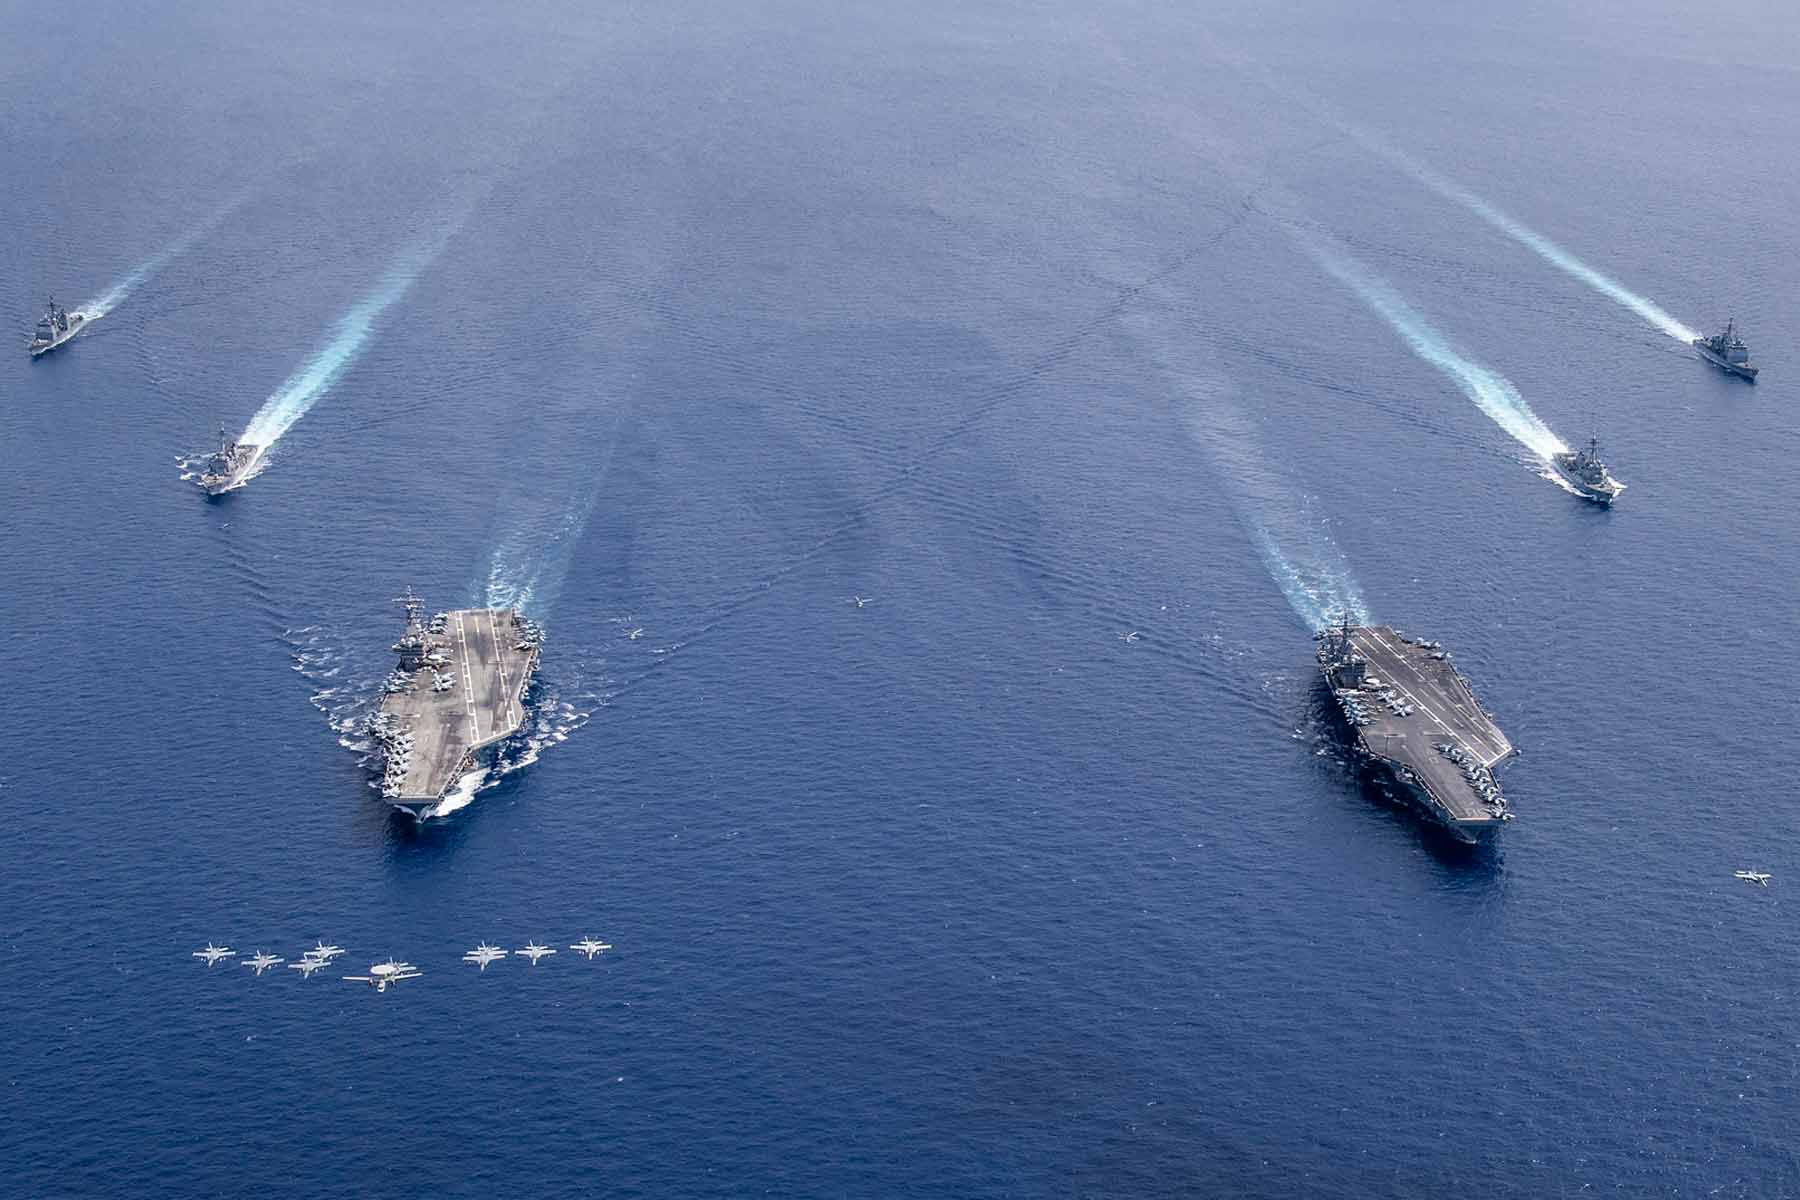 US Navy Aircraft on the sea